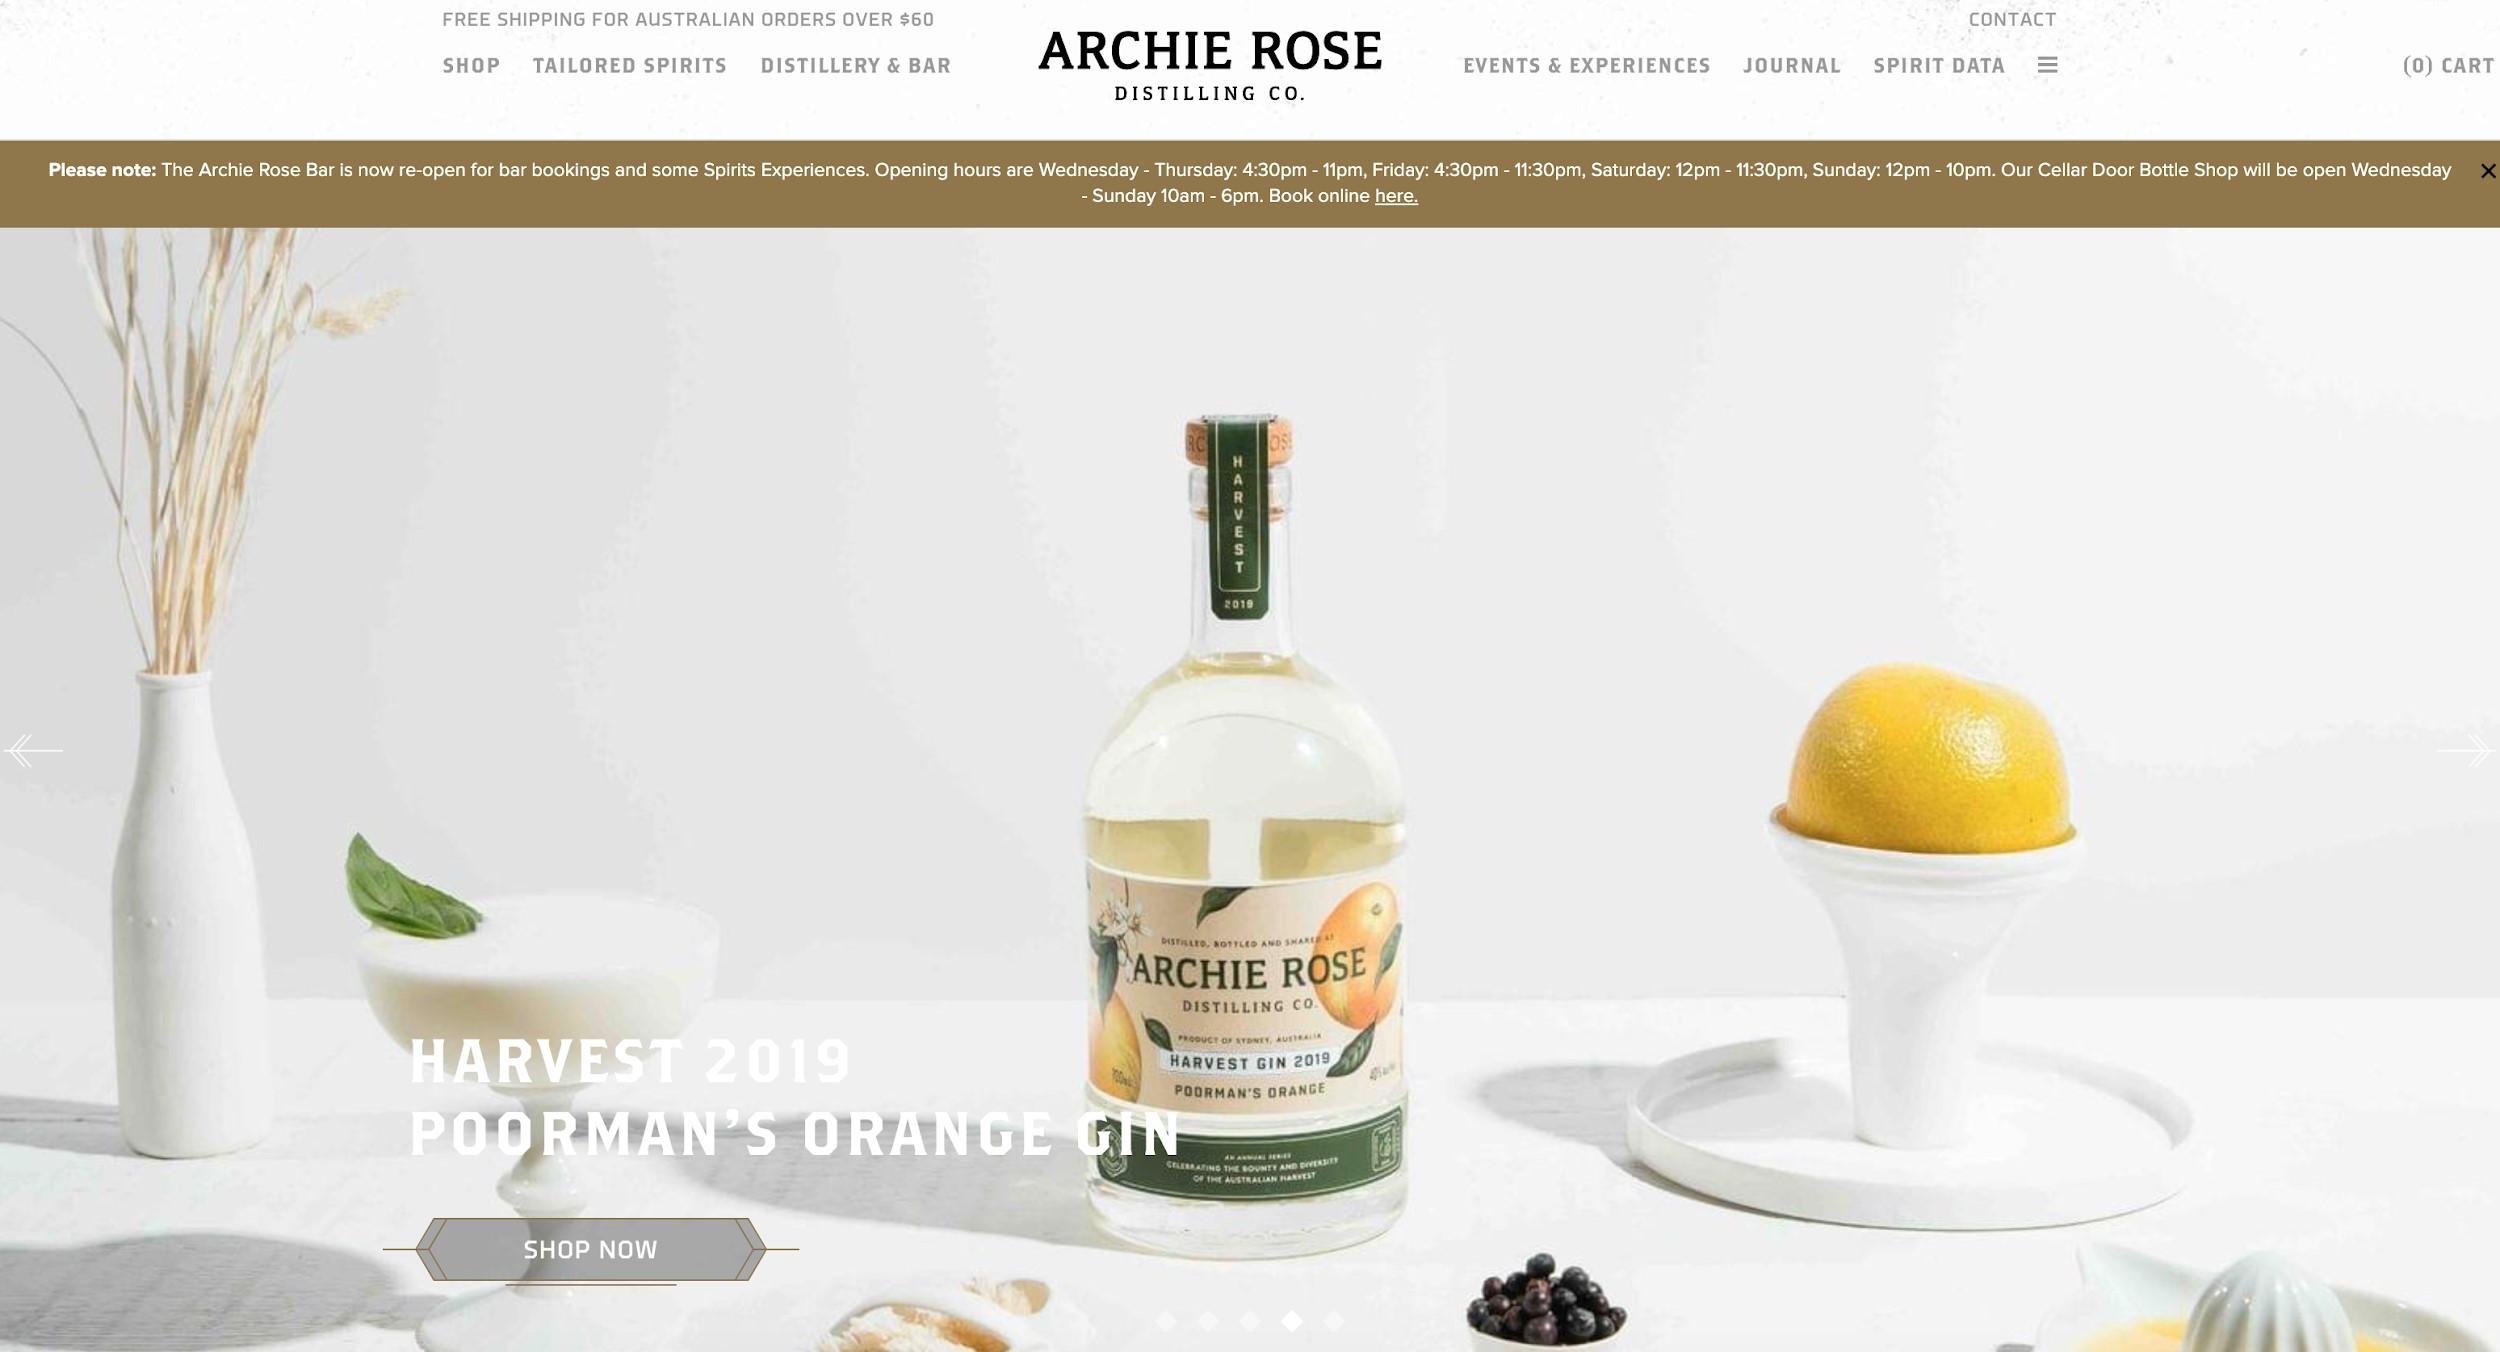 archie rose distilling co best e-commerce site